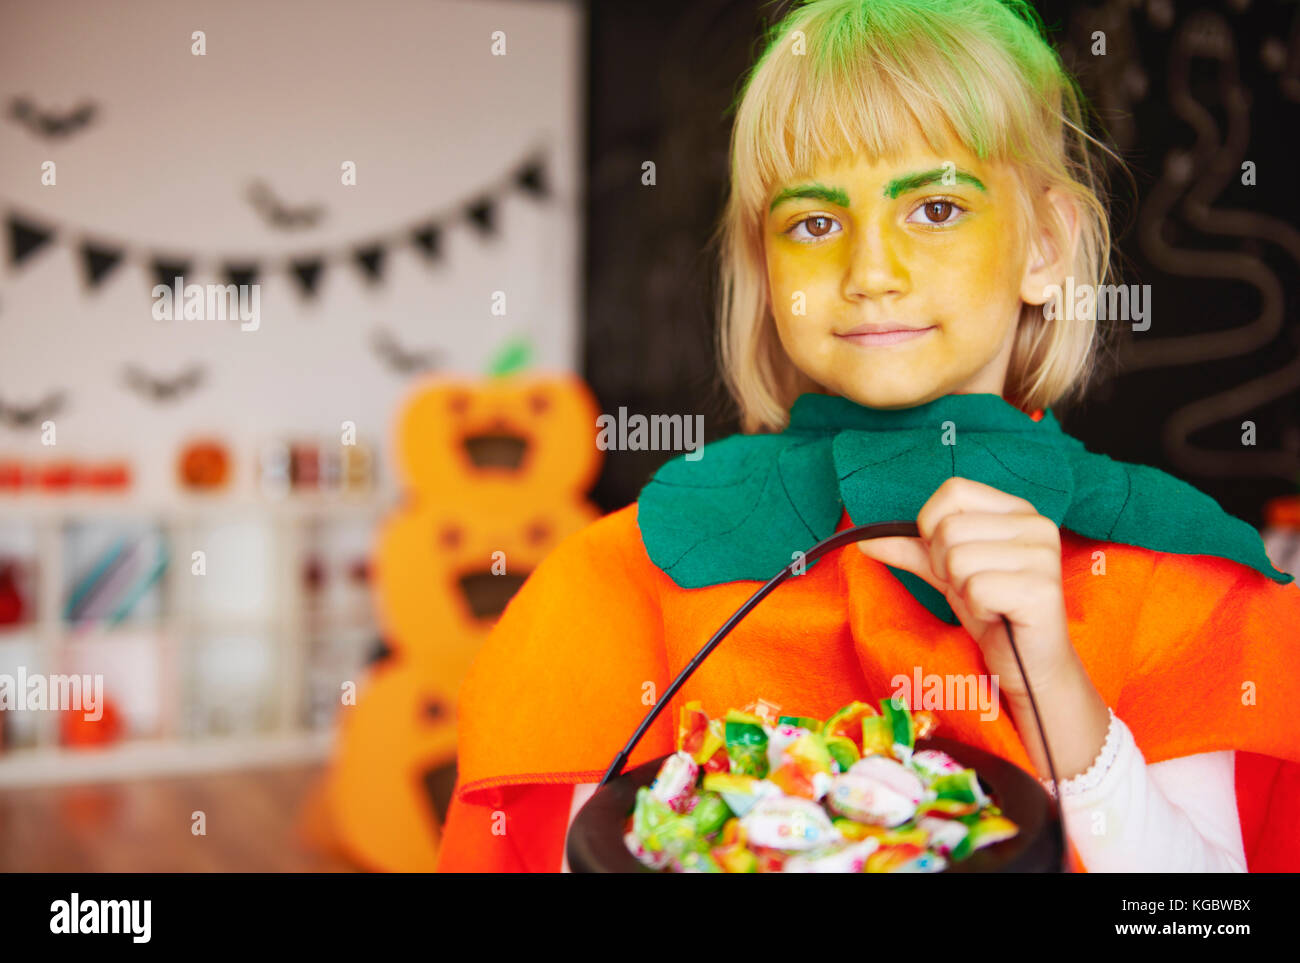 Girl in pumpkin costume with a bowl of candies - Stock Image